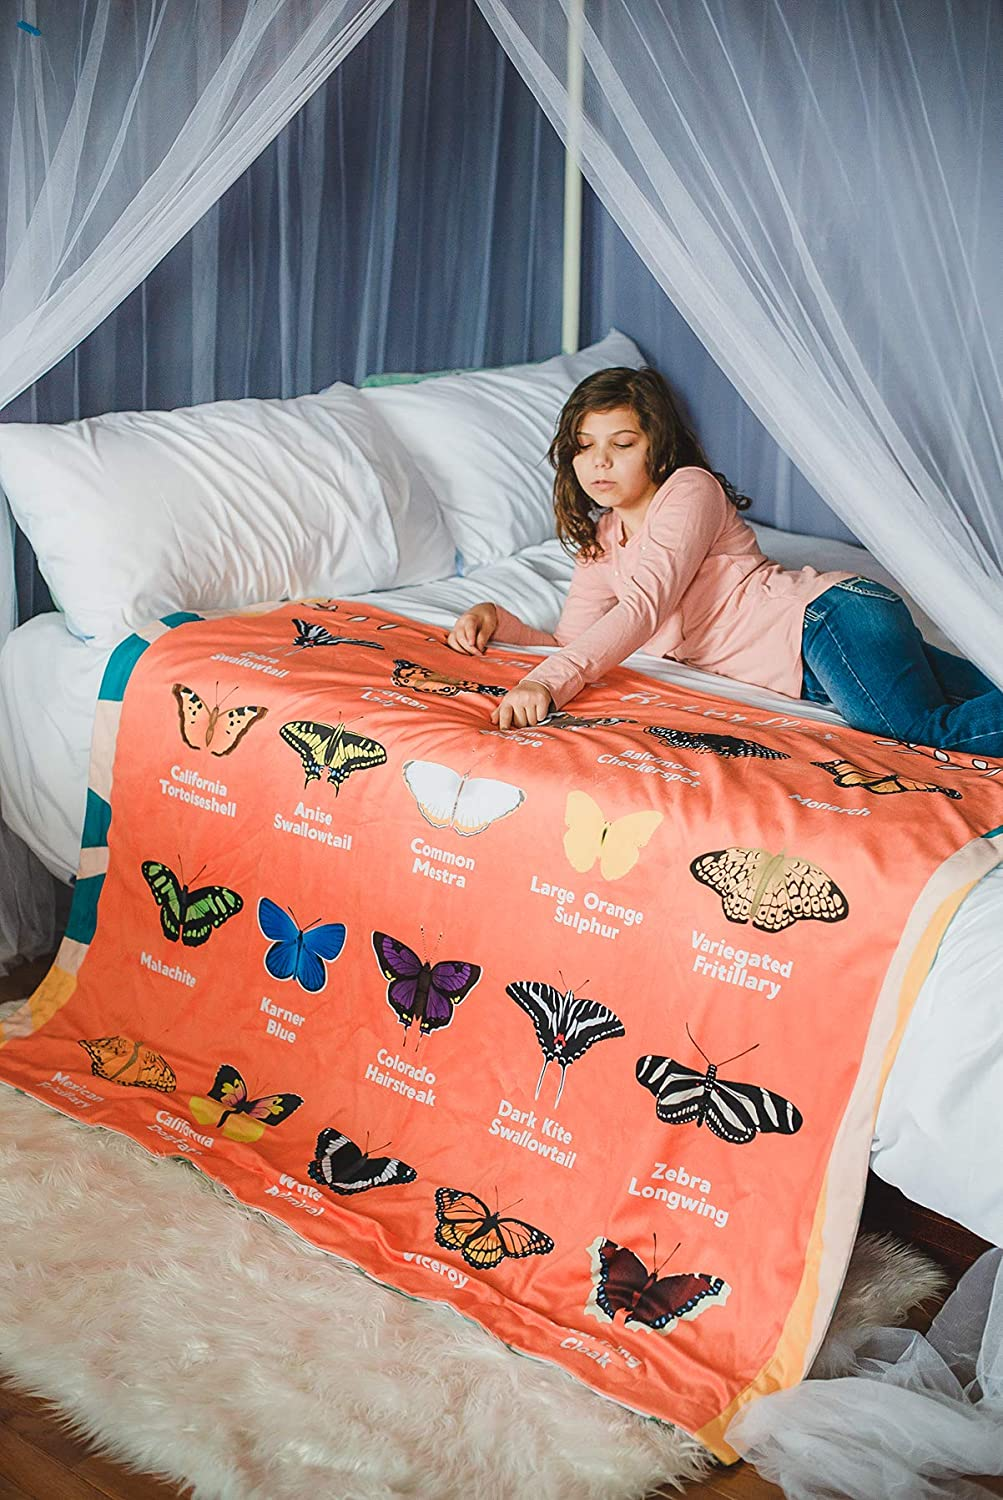 birdyboutique.com Birds Butterflies Common Backyard Species Pictures Names Identification Chart Soft Warm Learning Blanket for Kids Large 50x60 Educational Gift